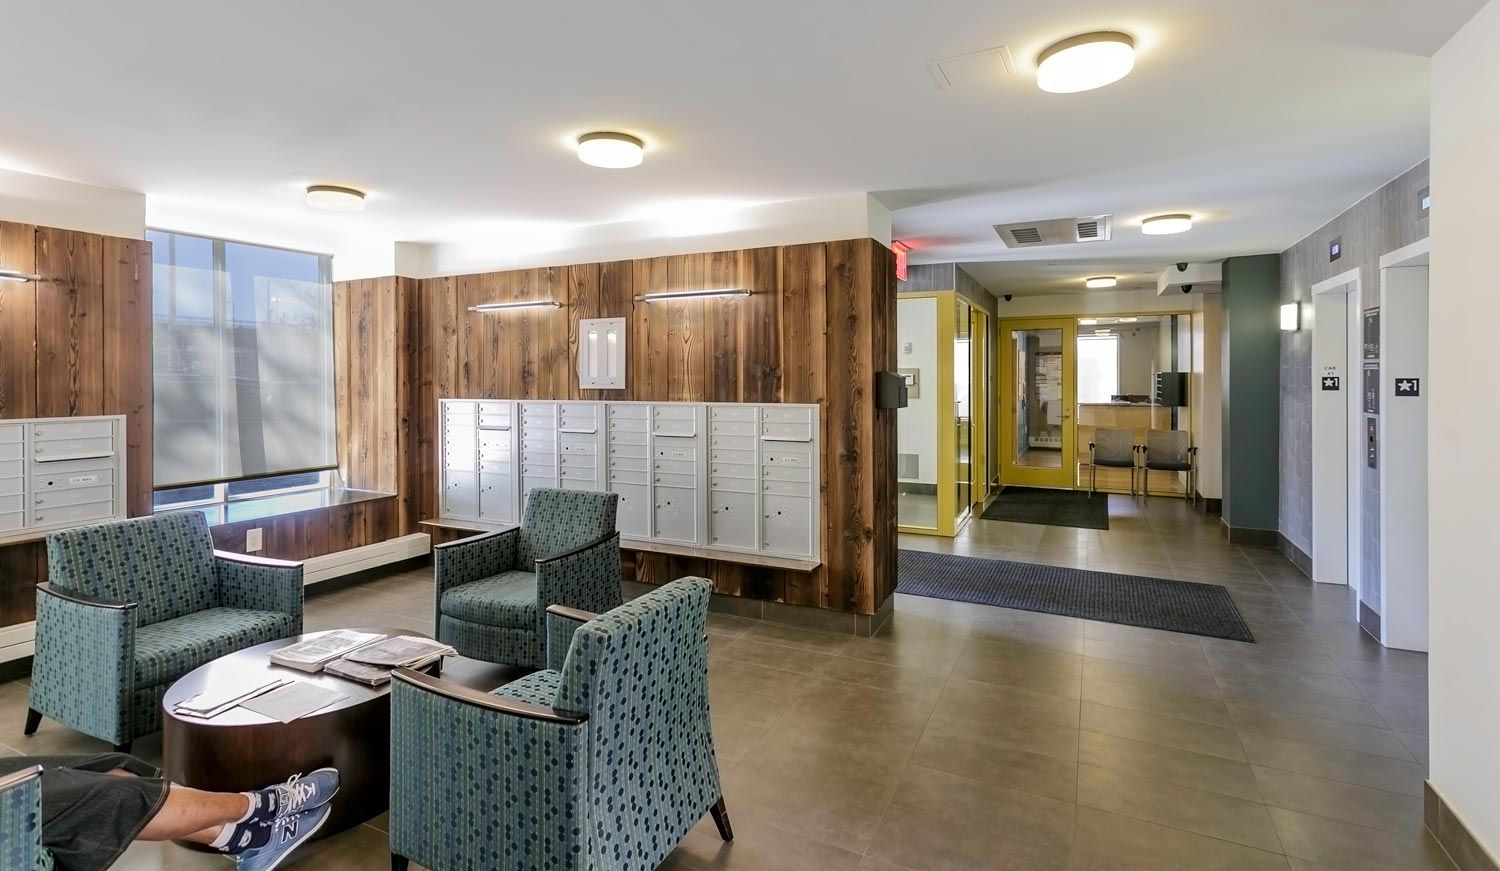 The lobby at The Villa also serves as a lounge for residents of this supportive housing project.